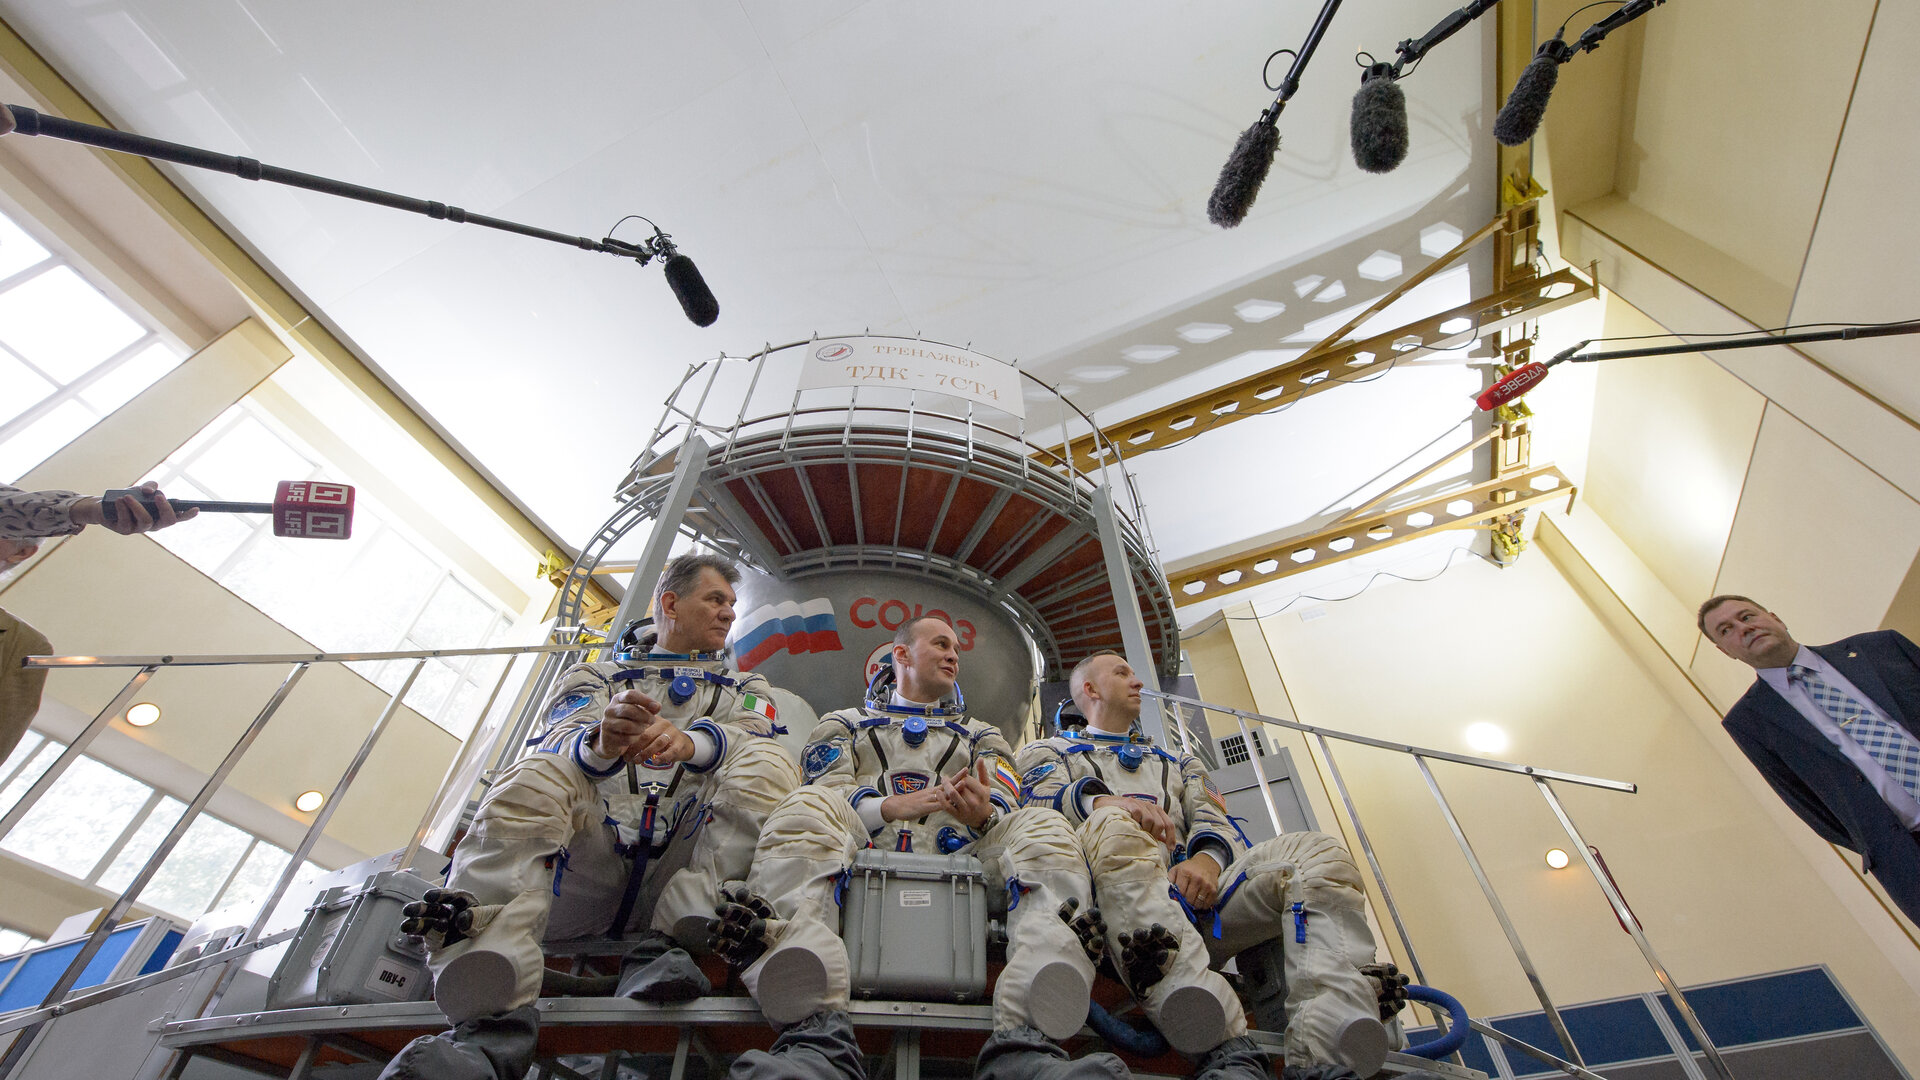 Paolo and crew during Soyuz exam